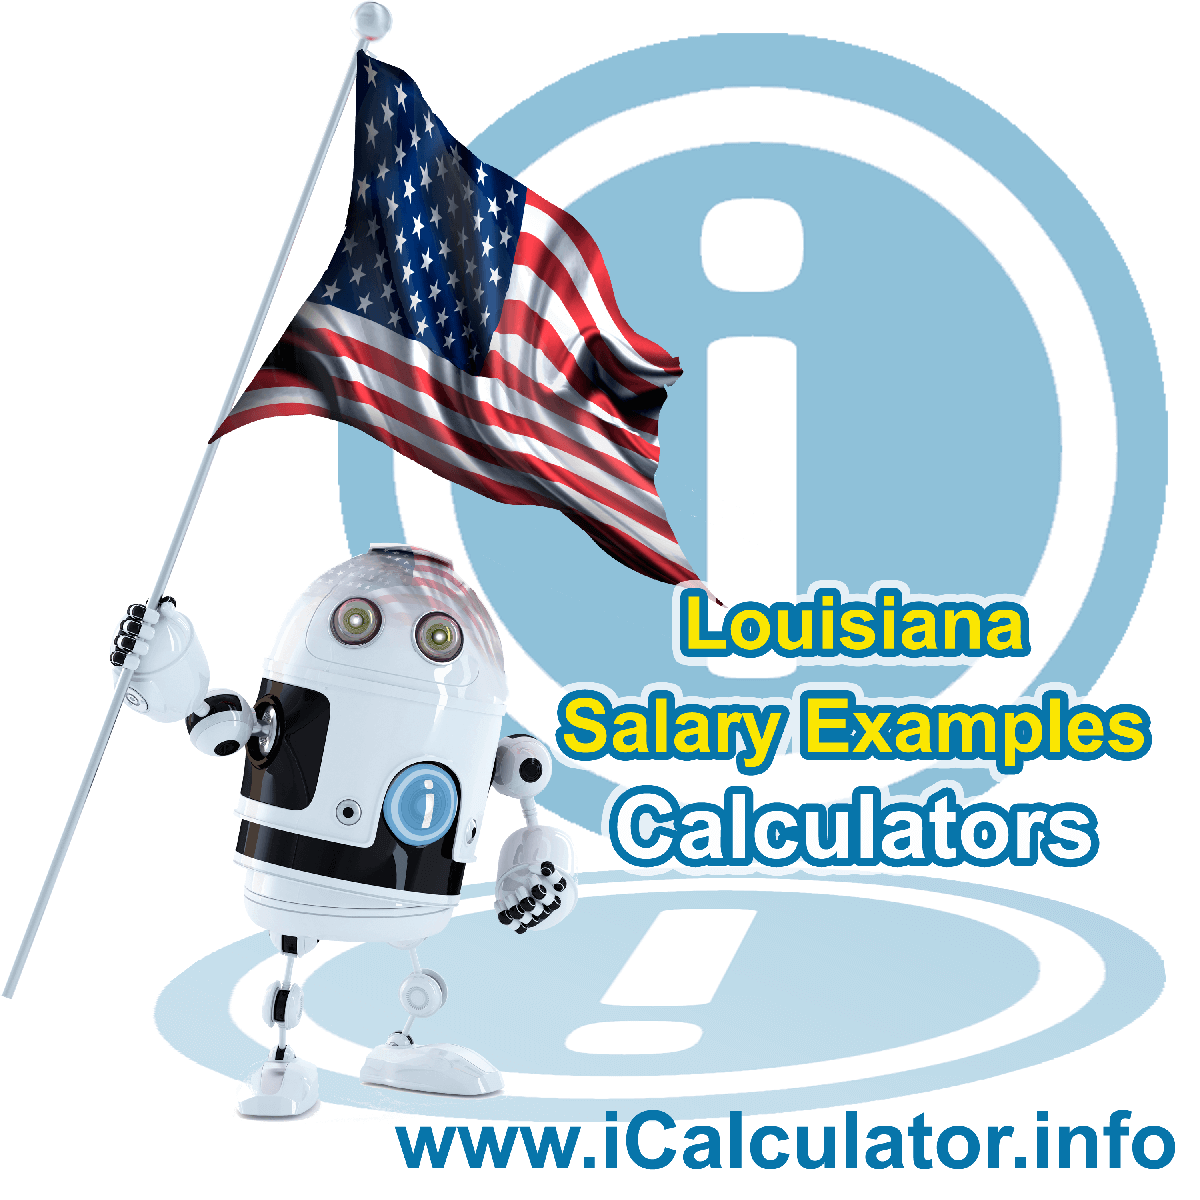 Louisiana Salary Example for $80.00 in 2020 | iCalculator | $80.00 salary example for employee and employer paying Louisiana State tincome taxes. Detailed salary after tax calculation including Louisiana State Tax, Federal State Tax, Medicare Deductions, Social Security, Capital Gains and other income tax and salary deductions complete with supporting Louisiana state tax tables